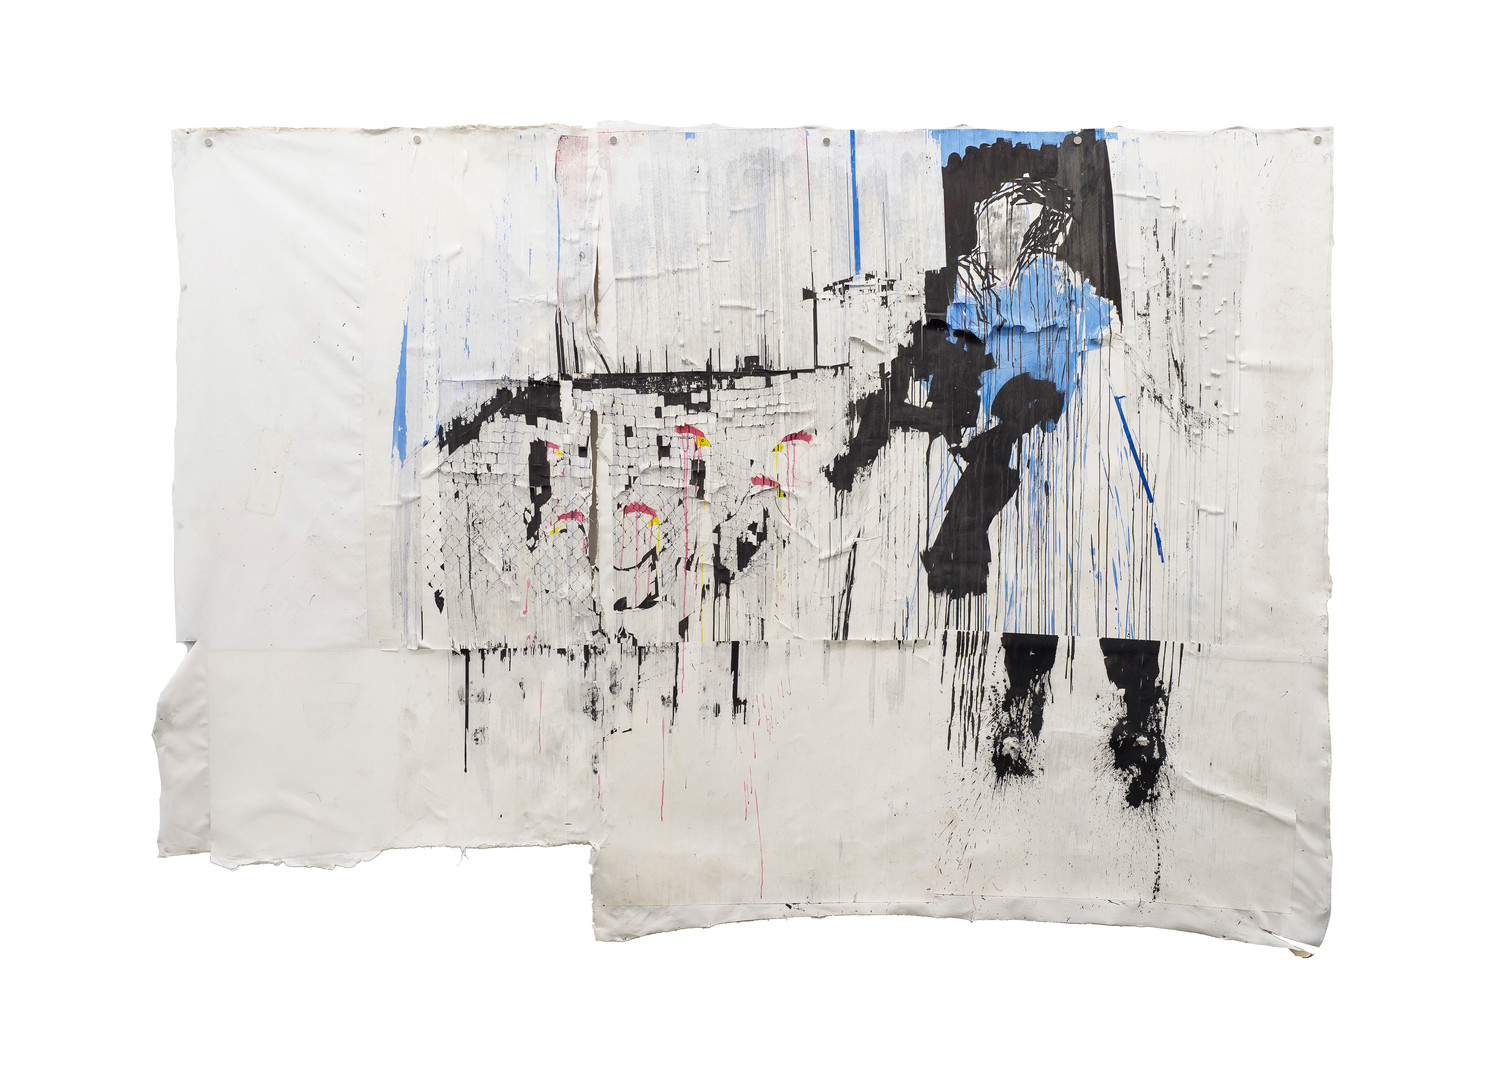 Gareth Nyandoro | Huku Pano | 2016 | Ink on Paper, Mounted on Canvas | 237 x 335 cm